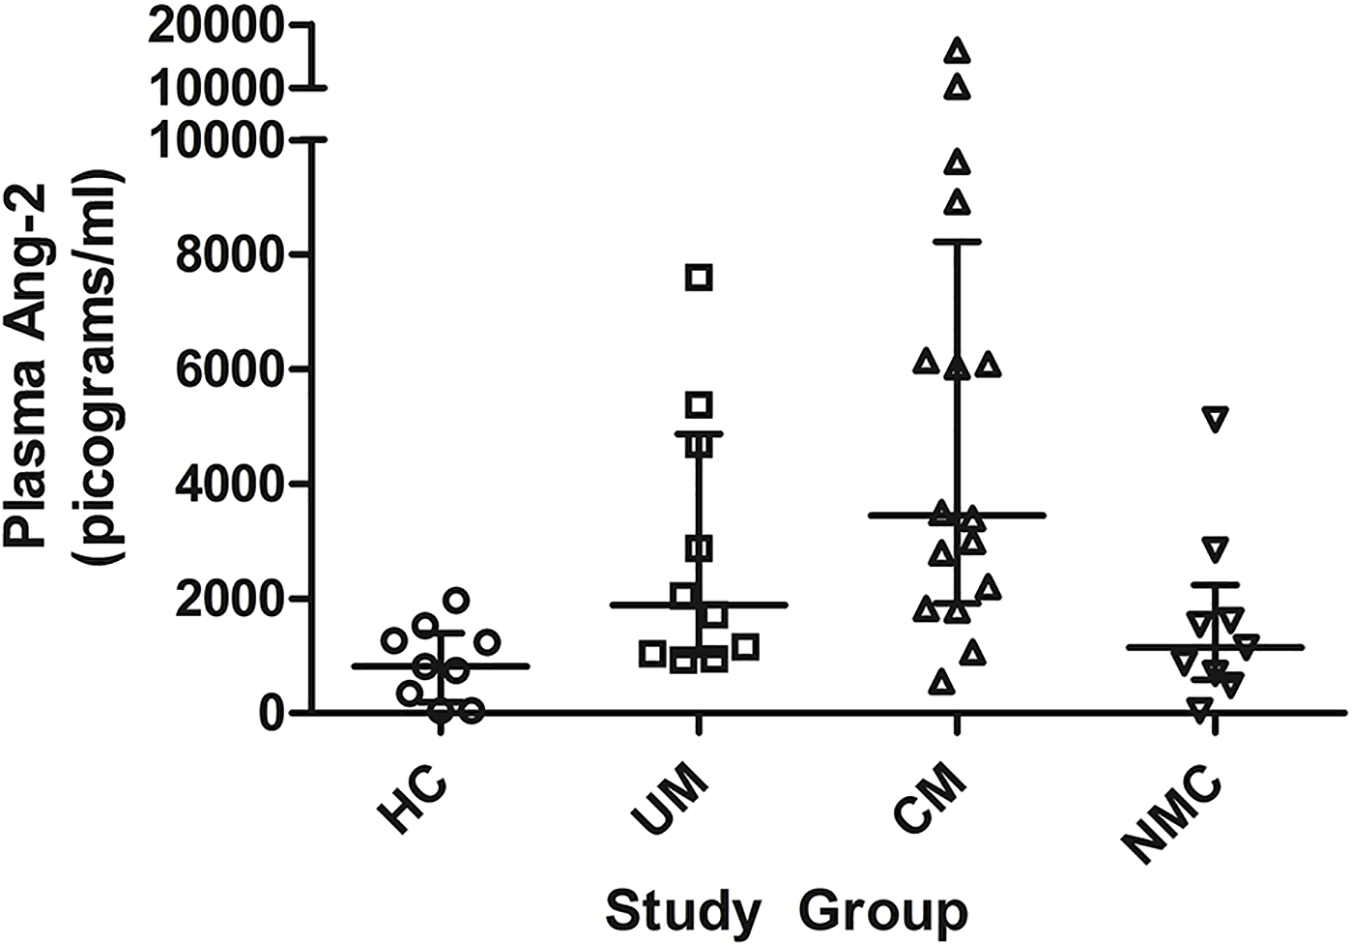 Plasma angiopoietin-2 concentrations at enrollment in the 4 clinical groups.